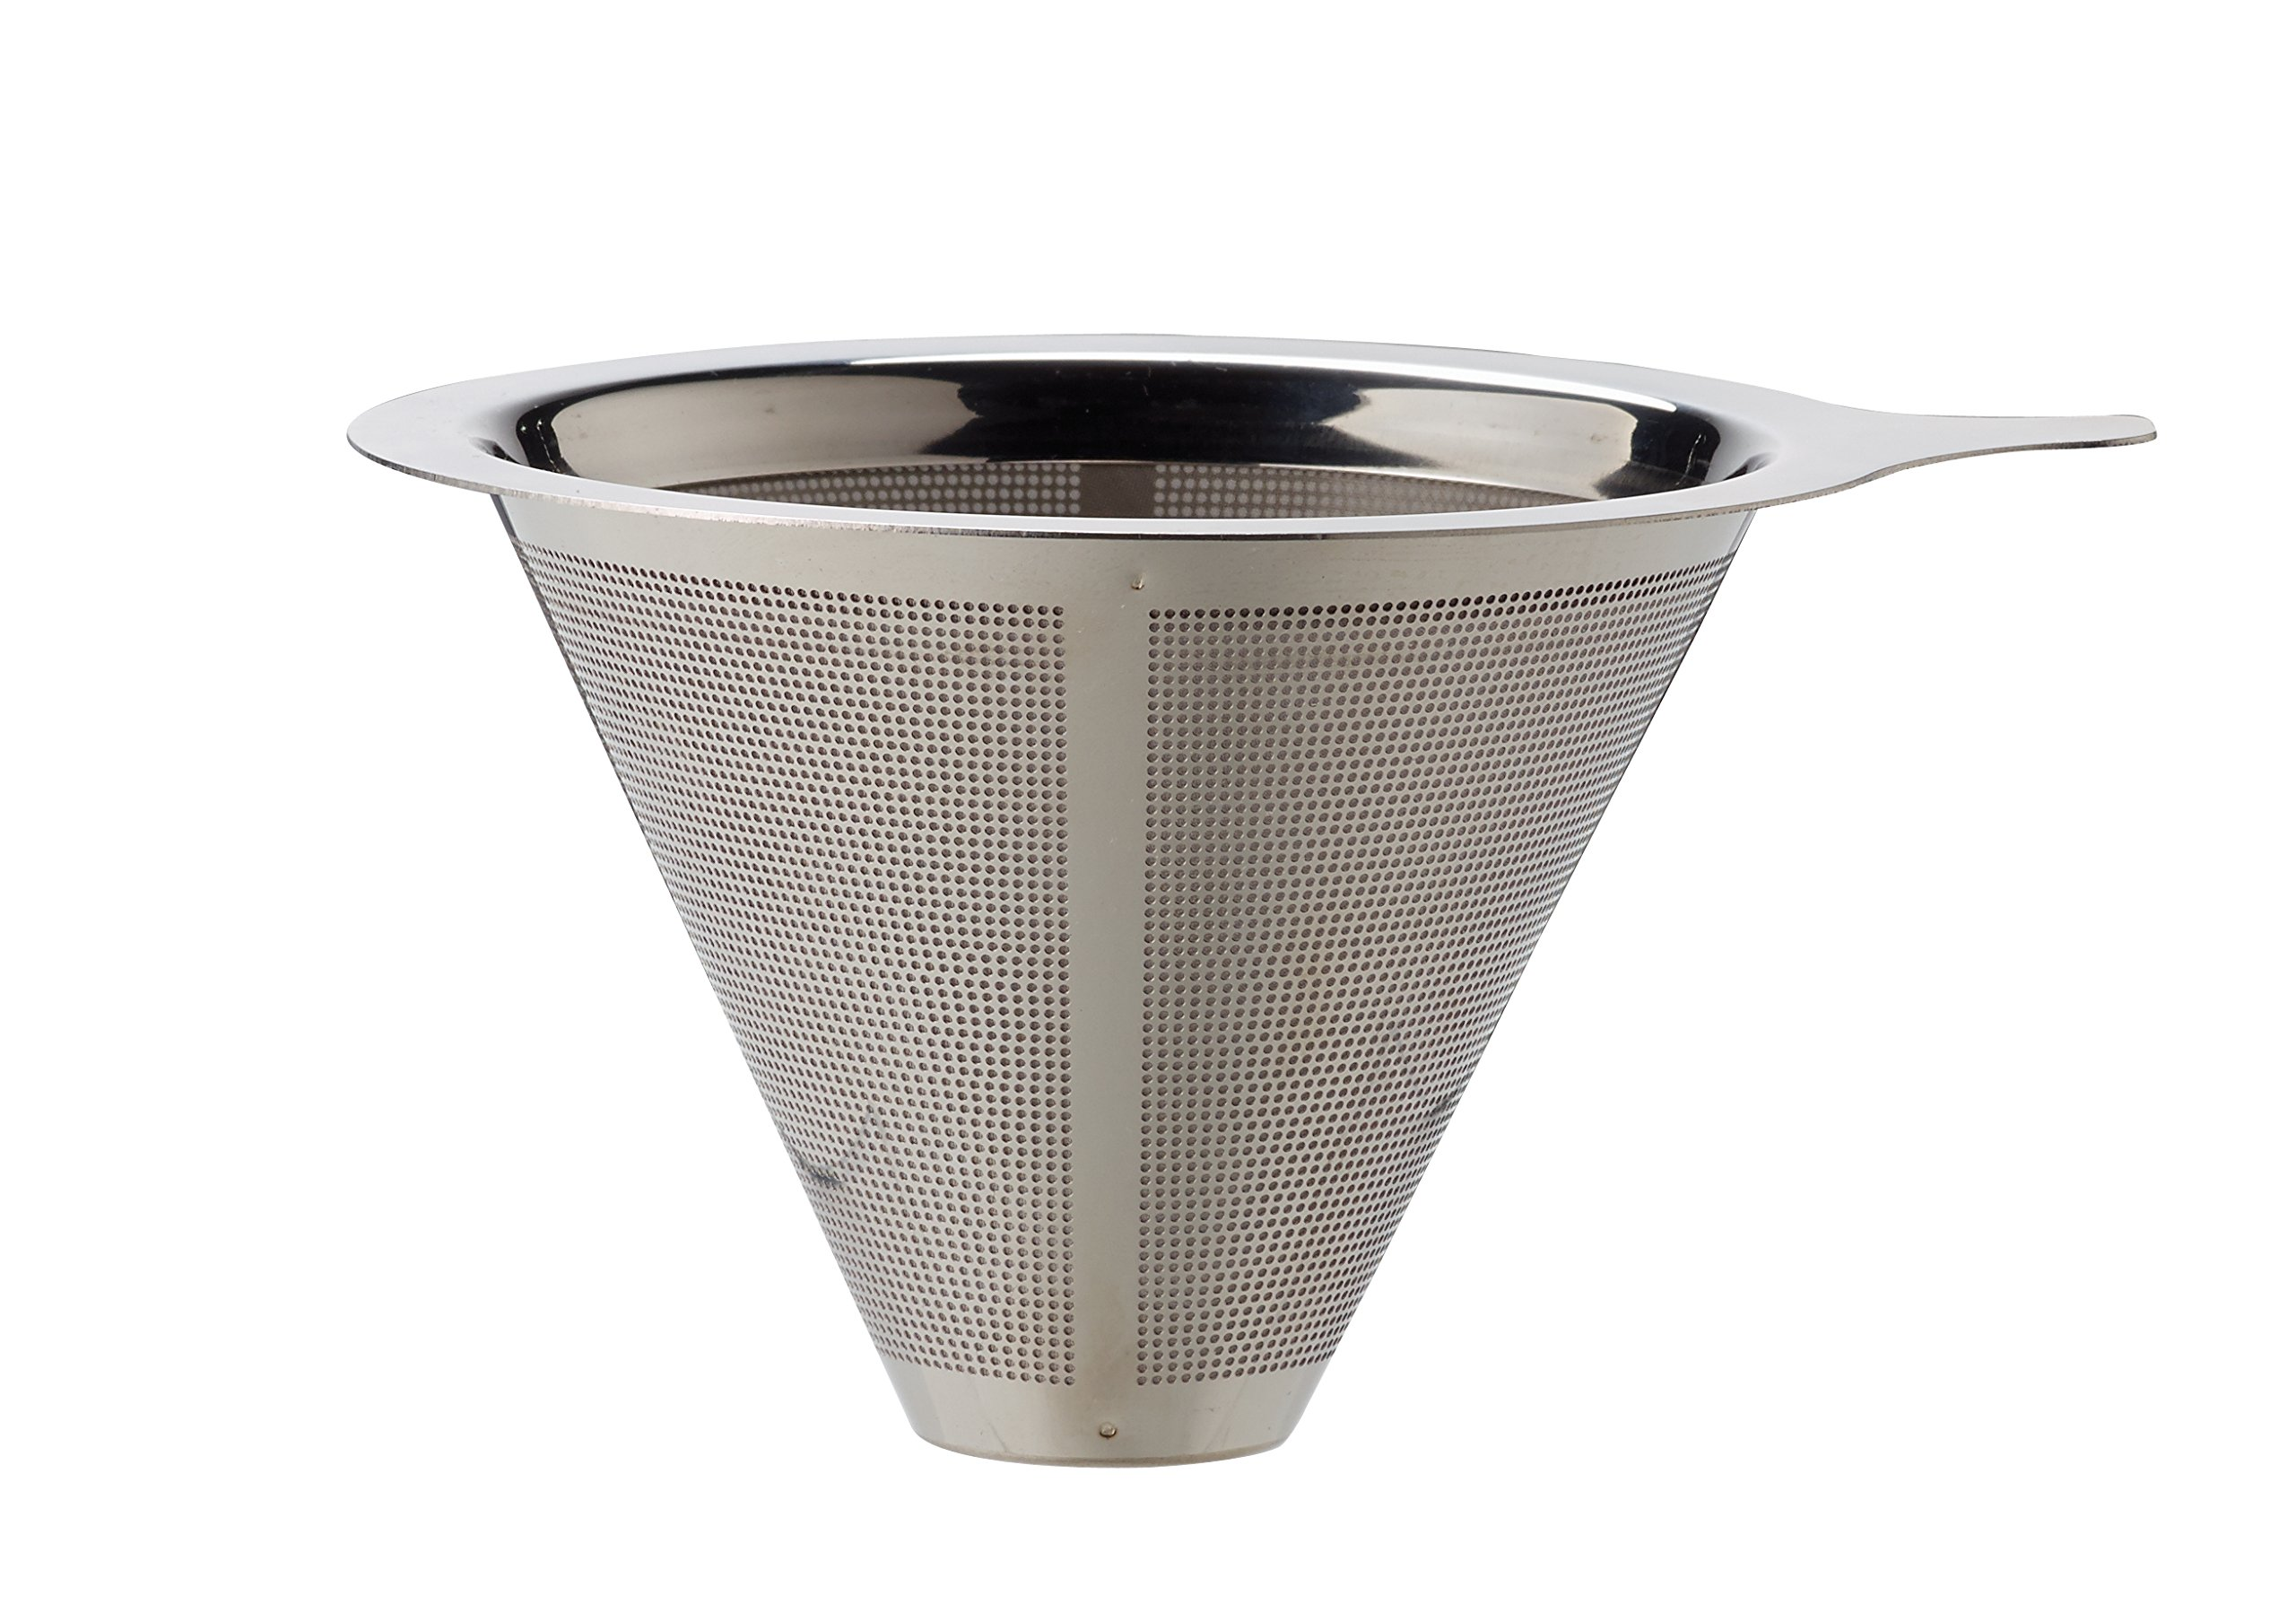 HIC Harold Import Co. 43782 Pour-Over Coffee Filter, Stainless Steel, 4-Servings, 4-Cup Capacity